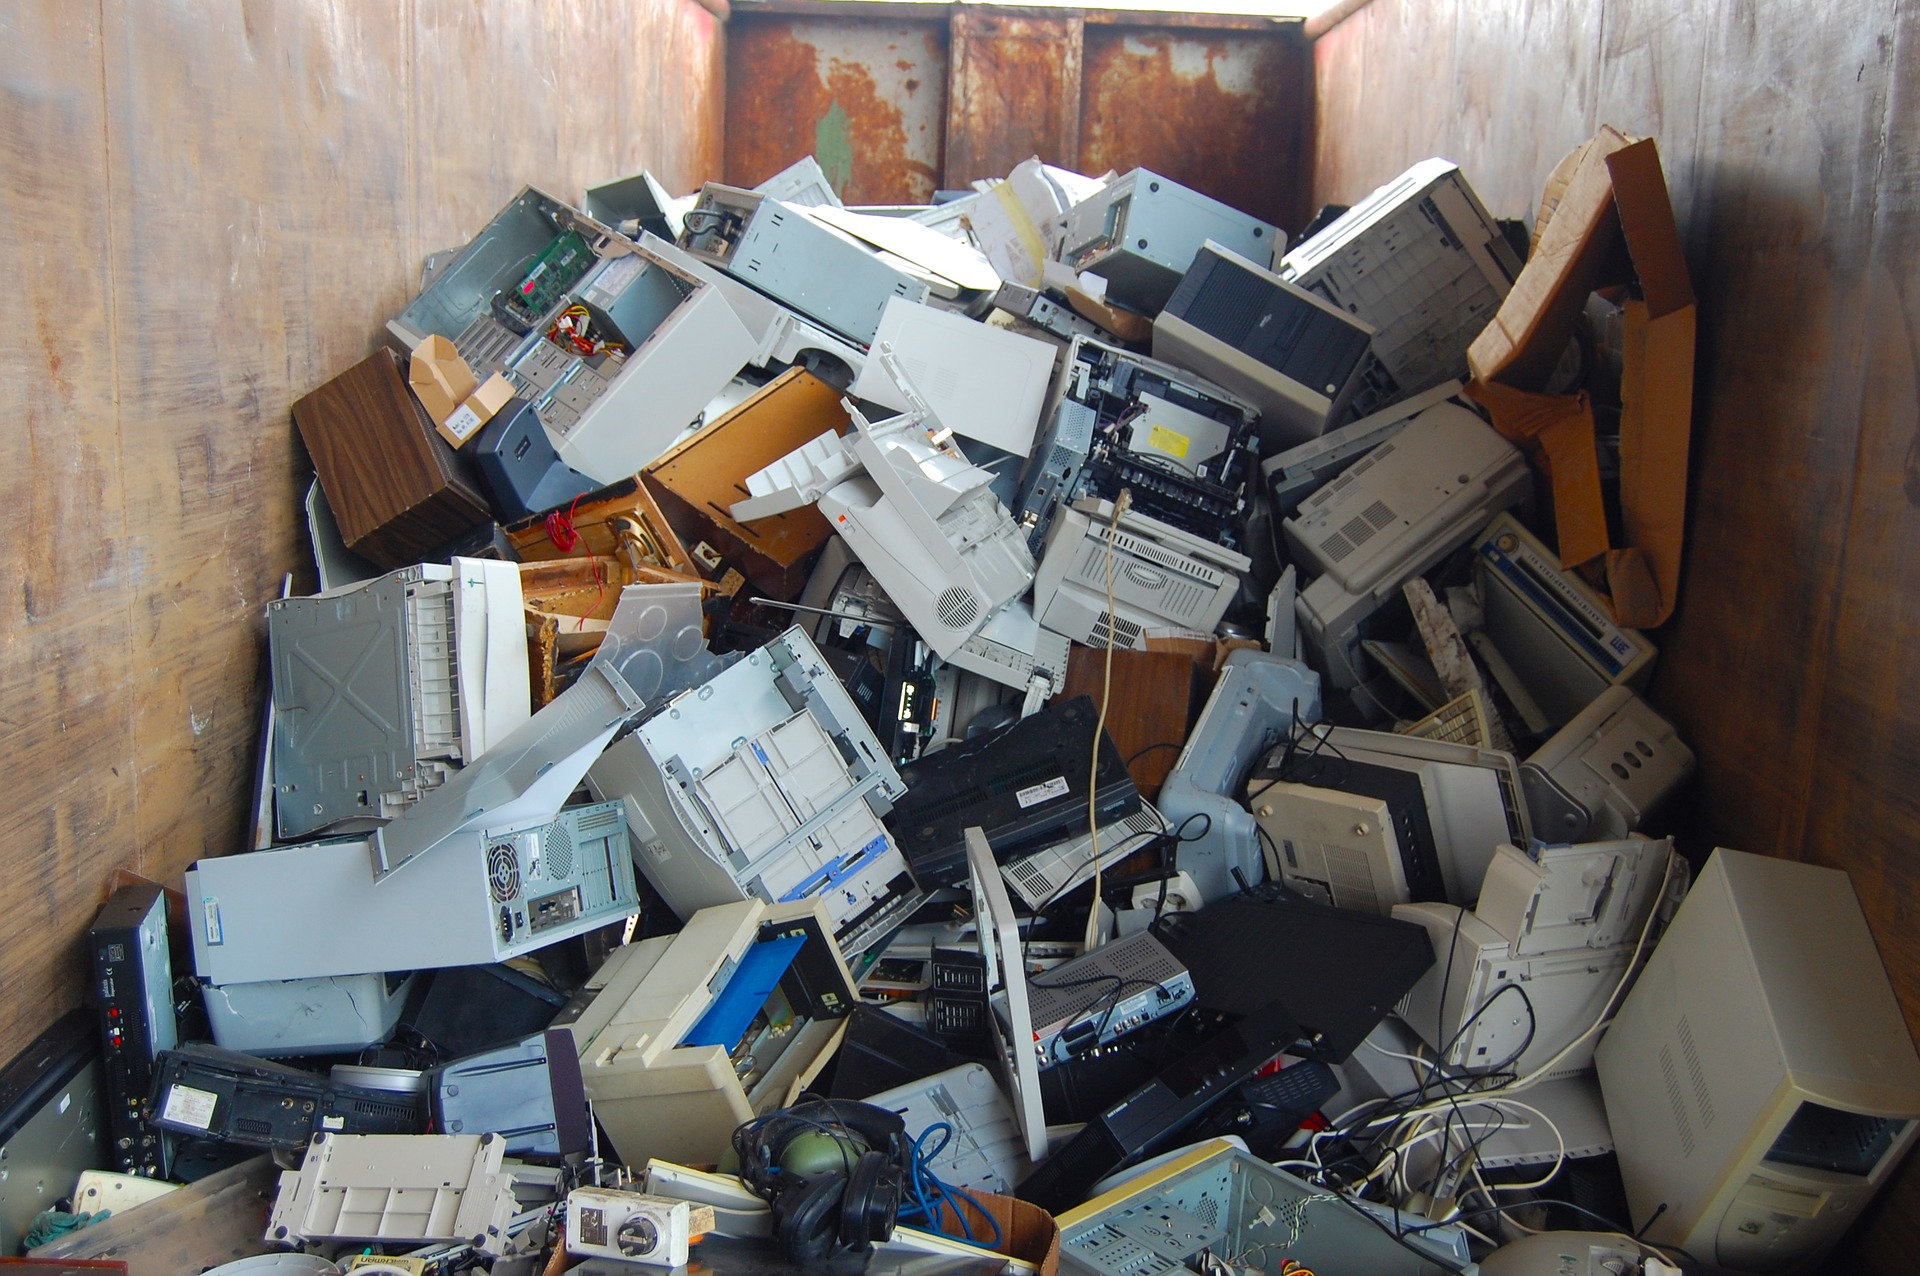 hight resolution of computer waste recycling company